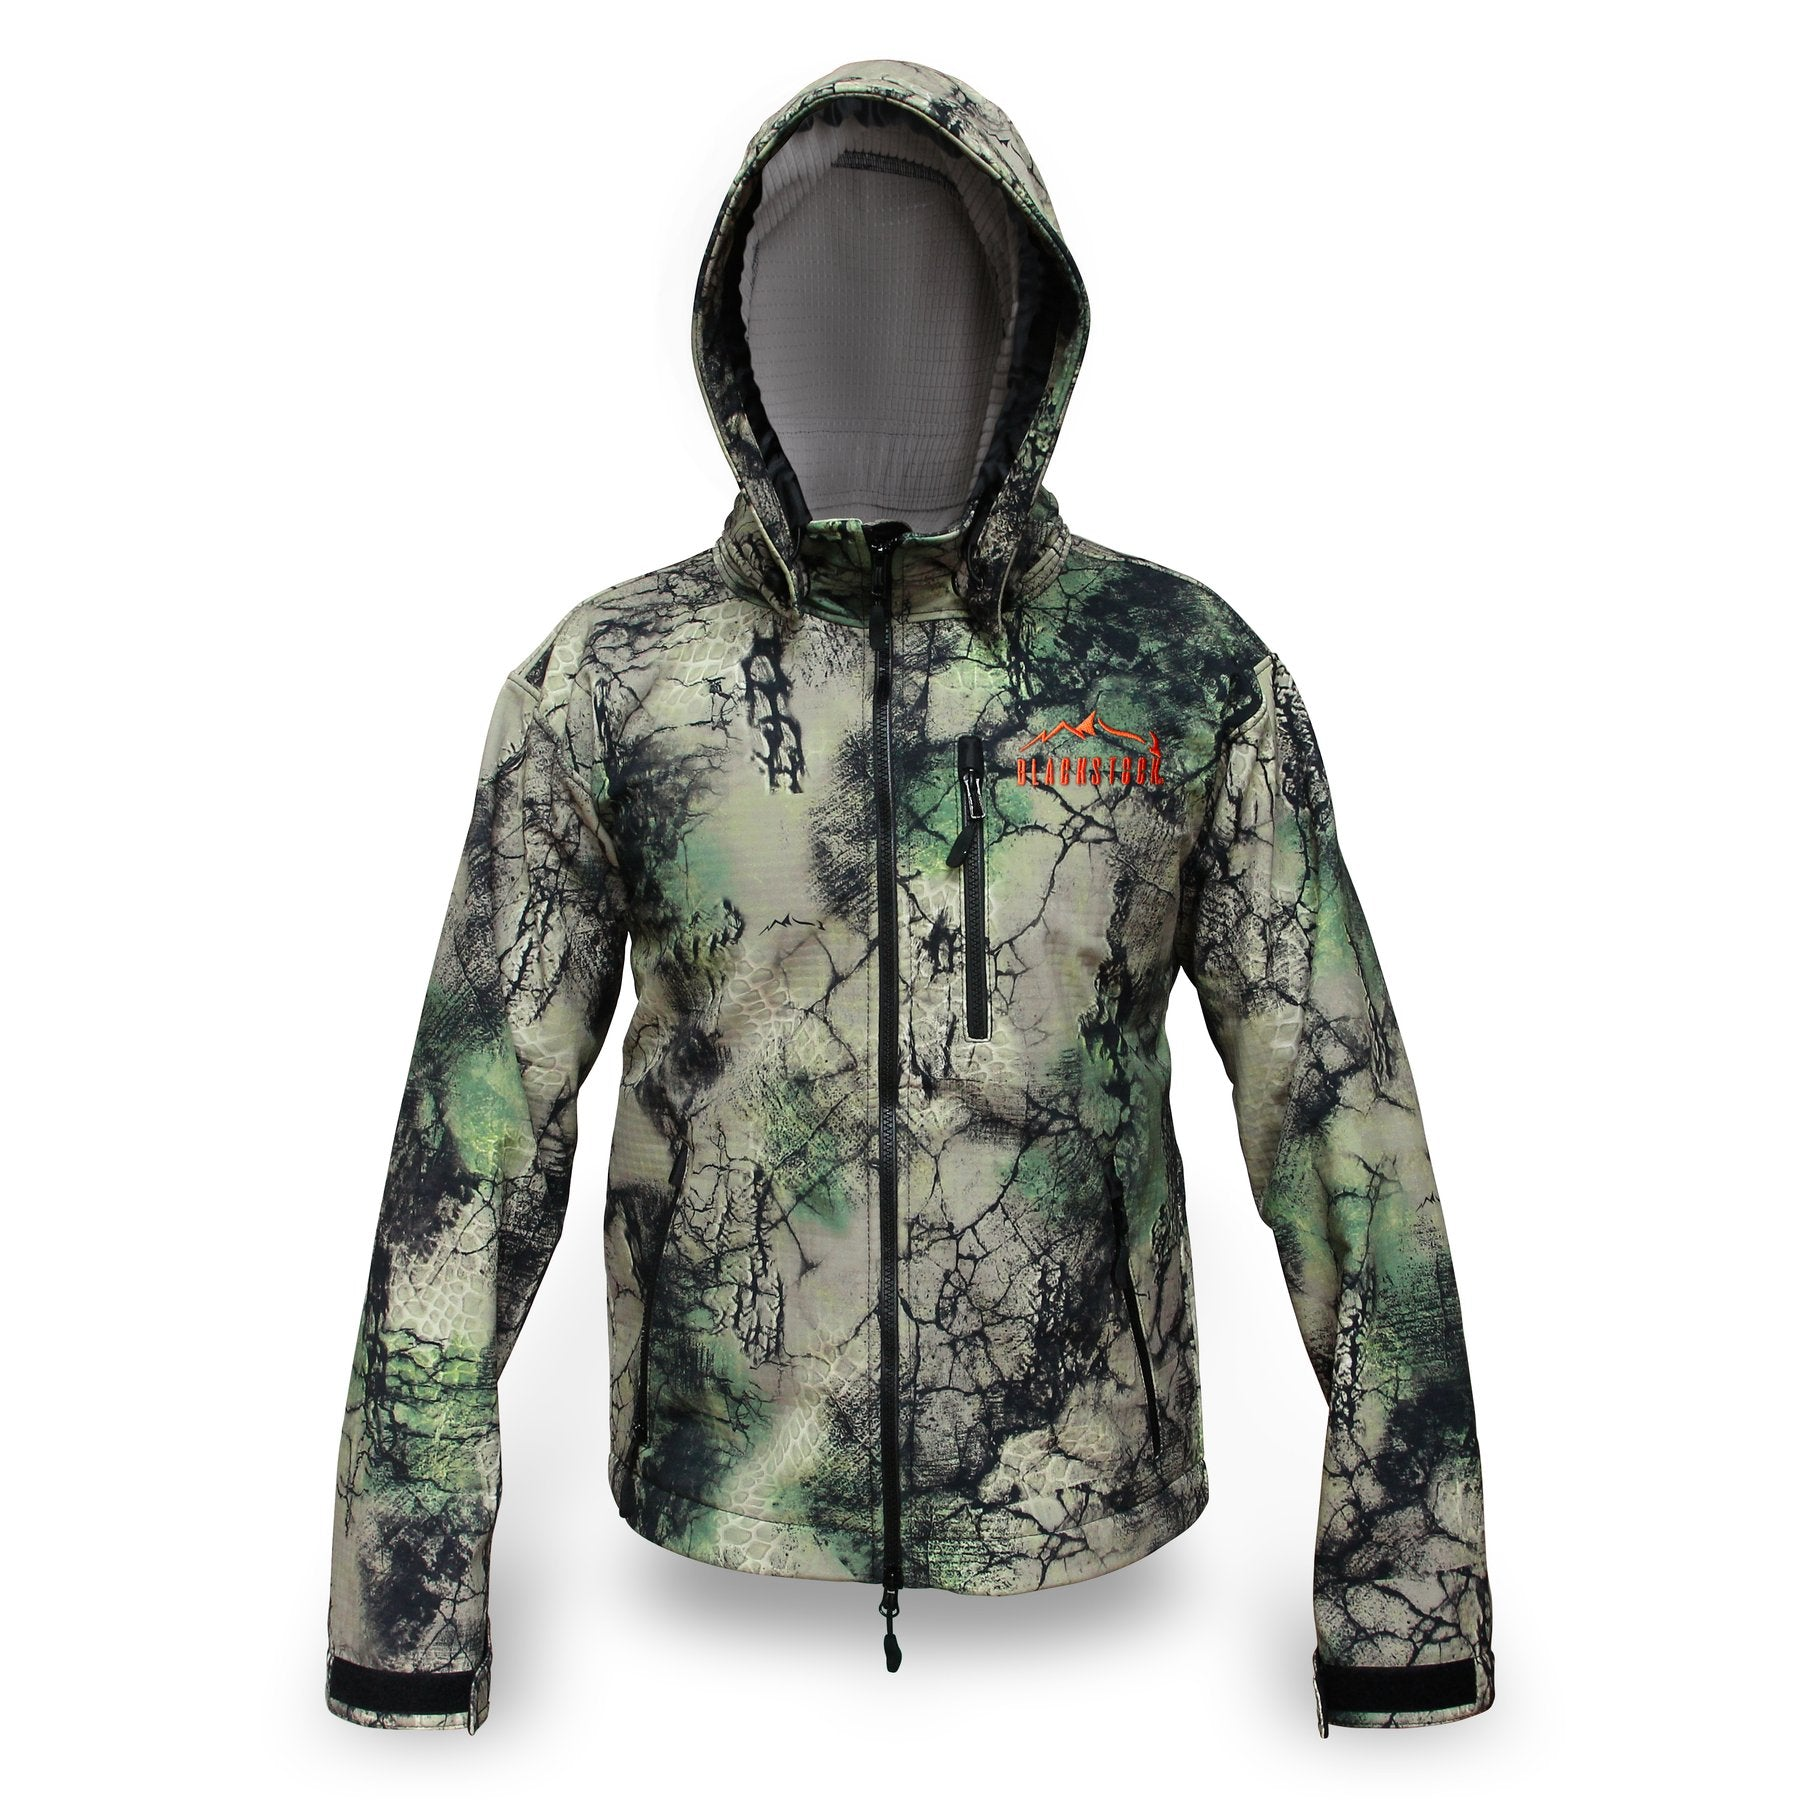 Blackstock™ Altitude Jacket